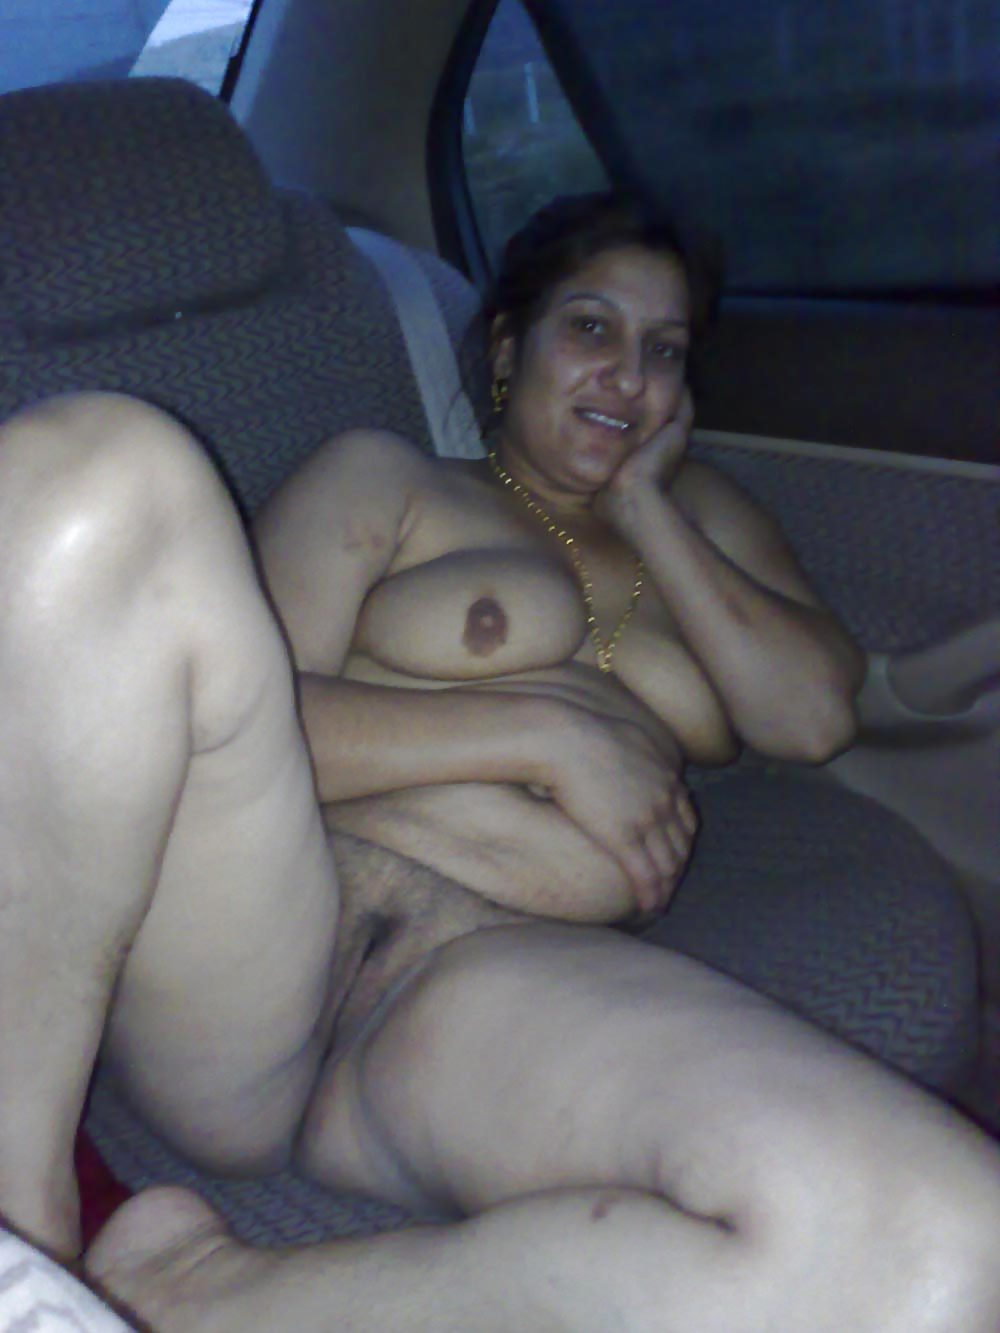 Nude nepali sex mom pussy photo accept. opinion